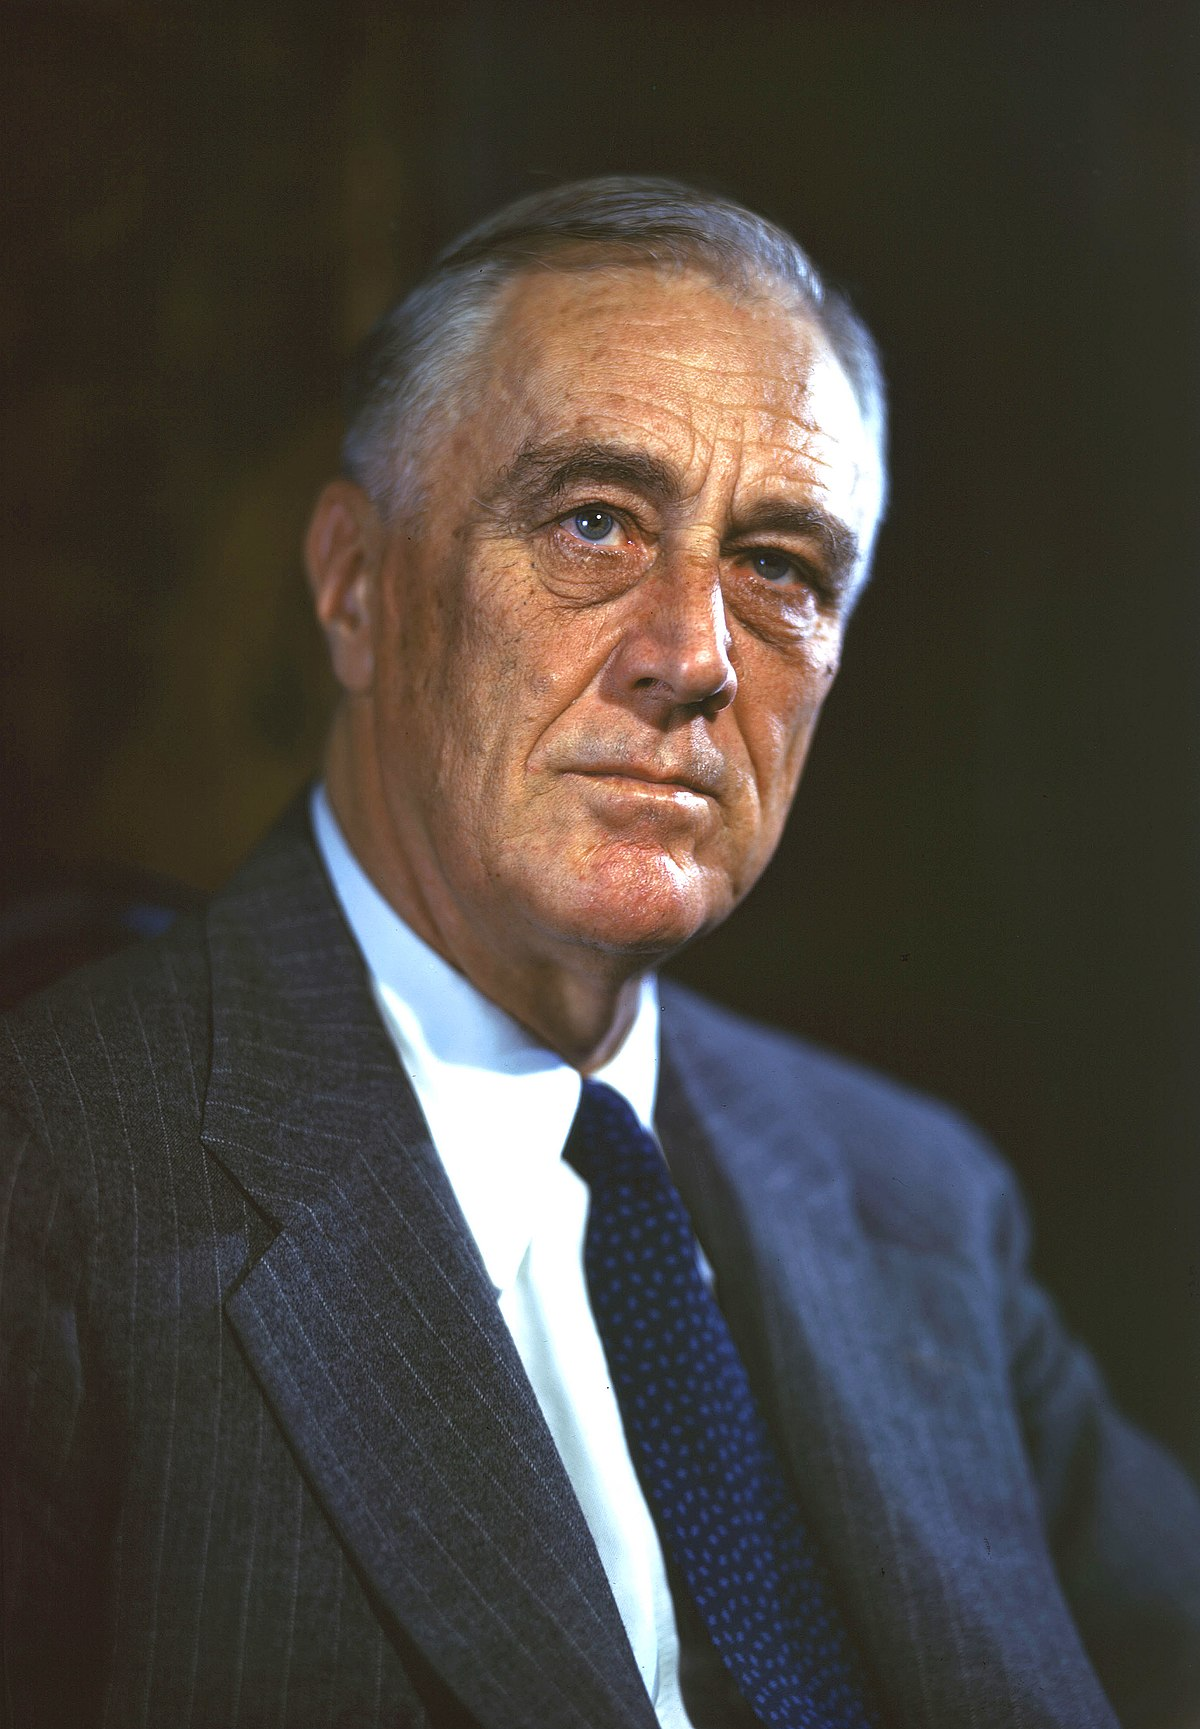 Franklin D. Roosevelt - Wikipedia